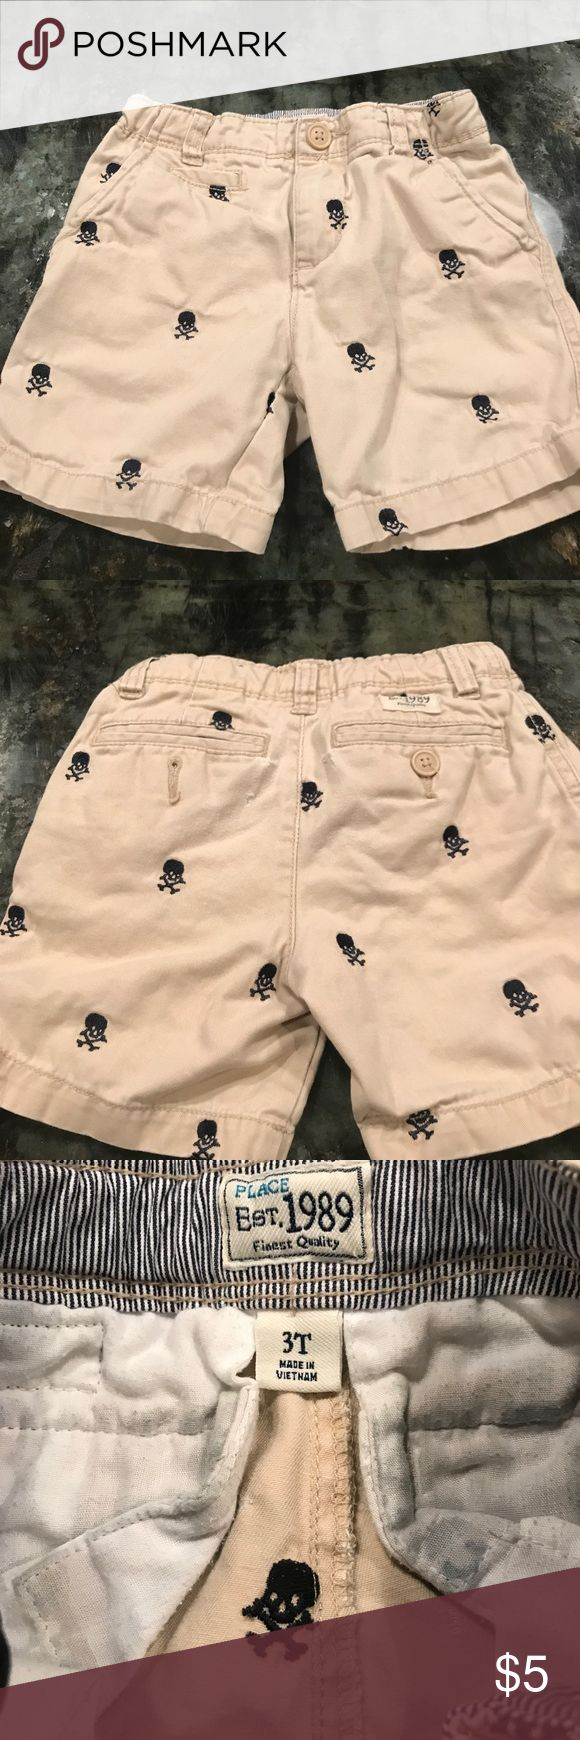 Children's Place Khaki Skull & Crossbones 3T Short Children's Place Khaki Skull & Crossbones 3T Shorts - these are well made and show some wear in the back as shown in pictures. Priced accordingly. Price is firm unless bundled. Children's Place Bottoms Shorts